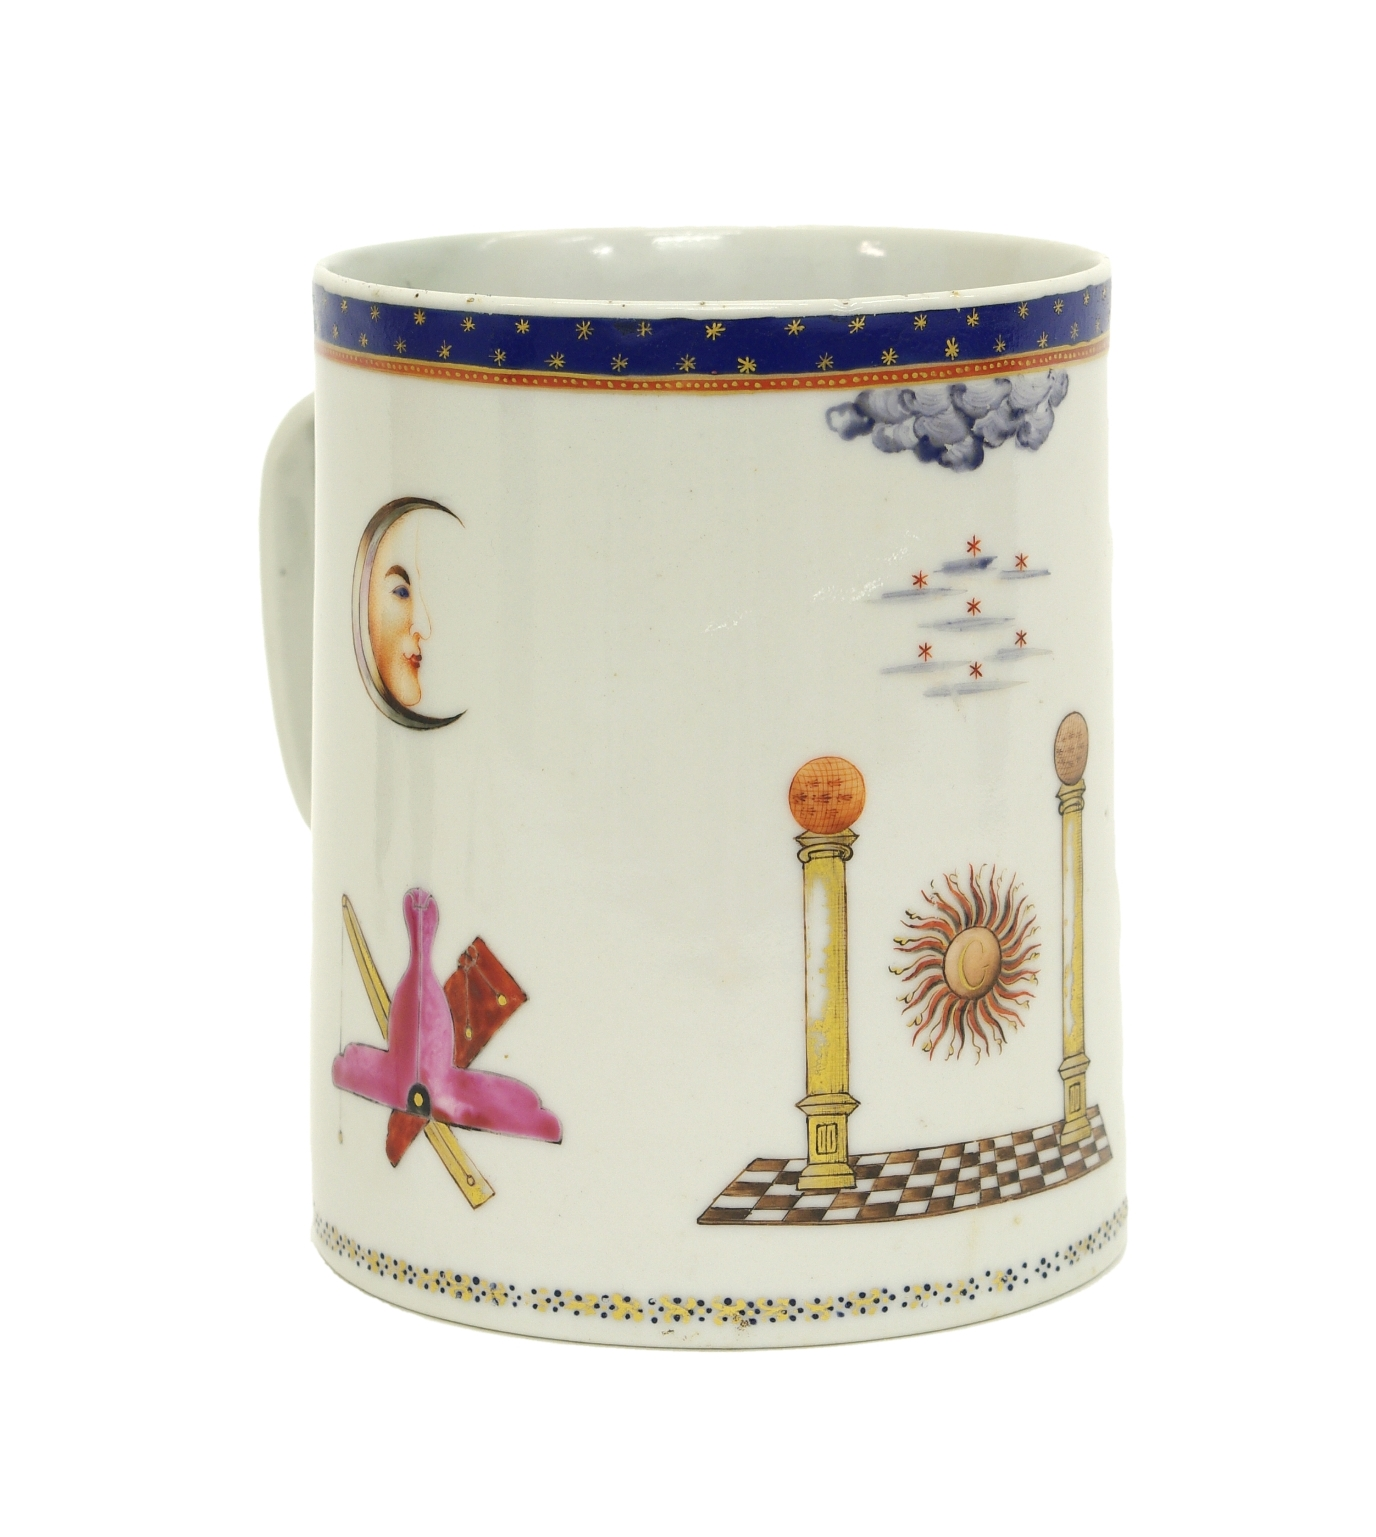 Chinese Export Masonic Mug, c. 1795